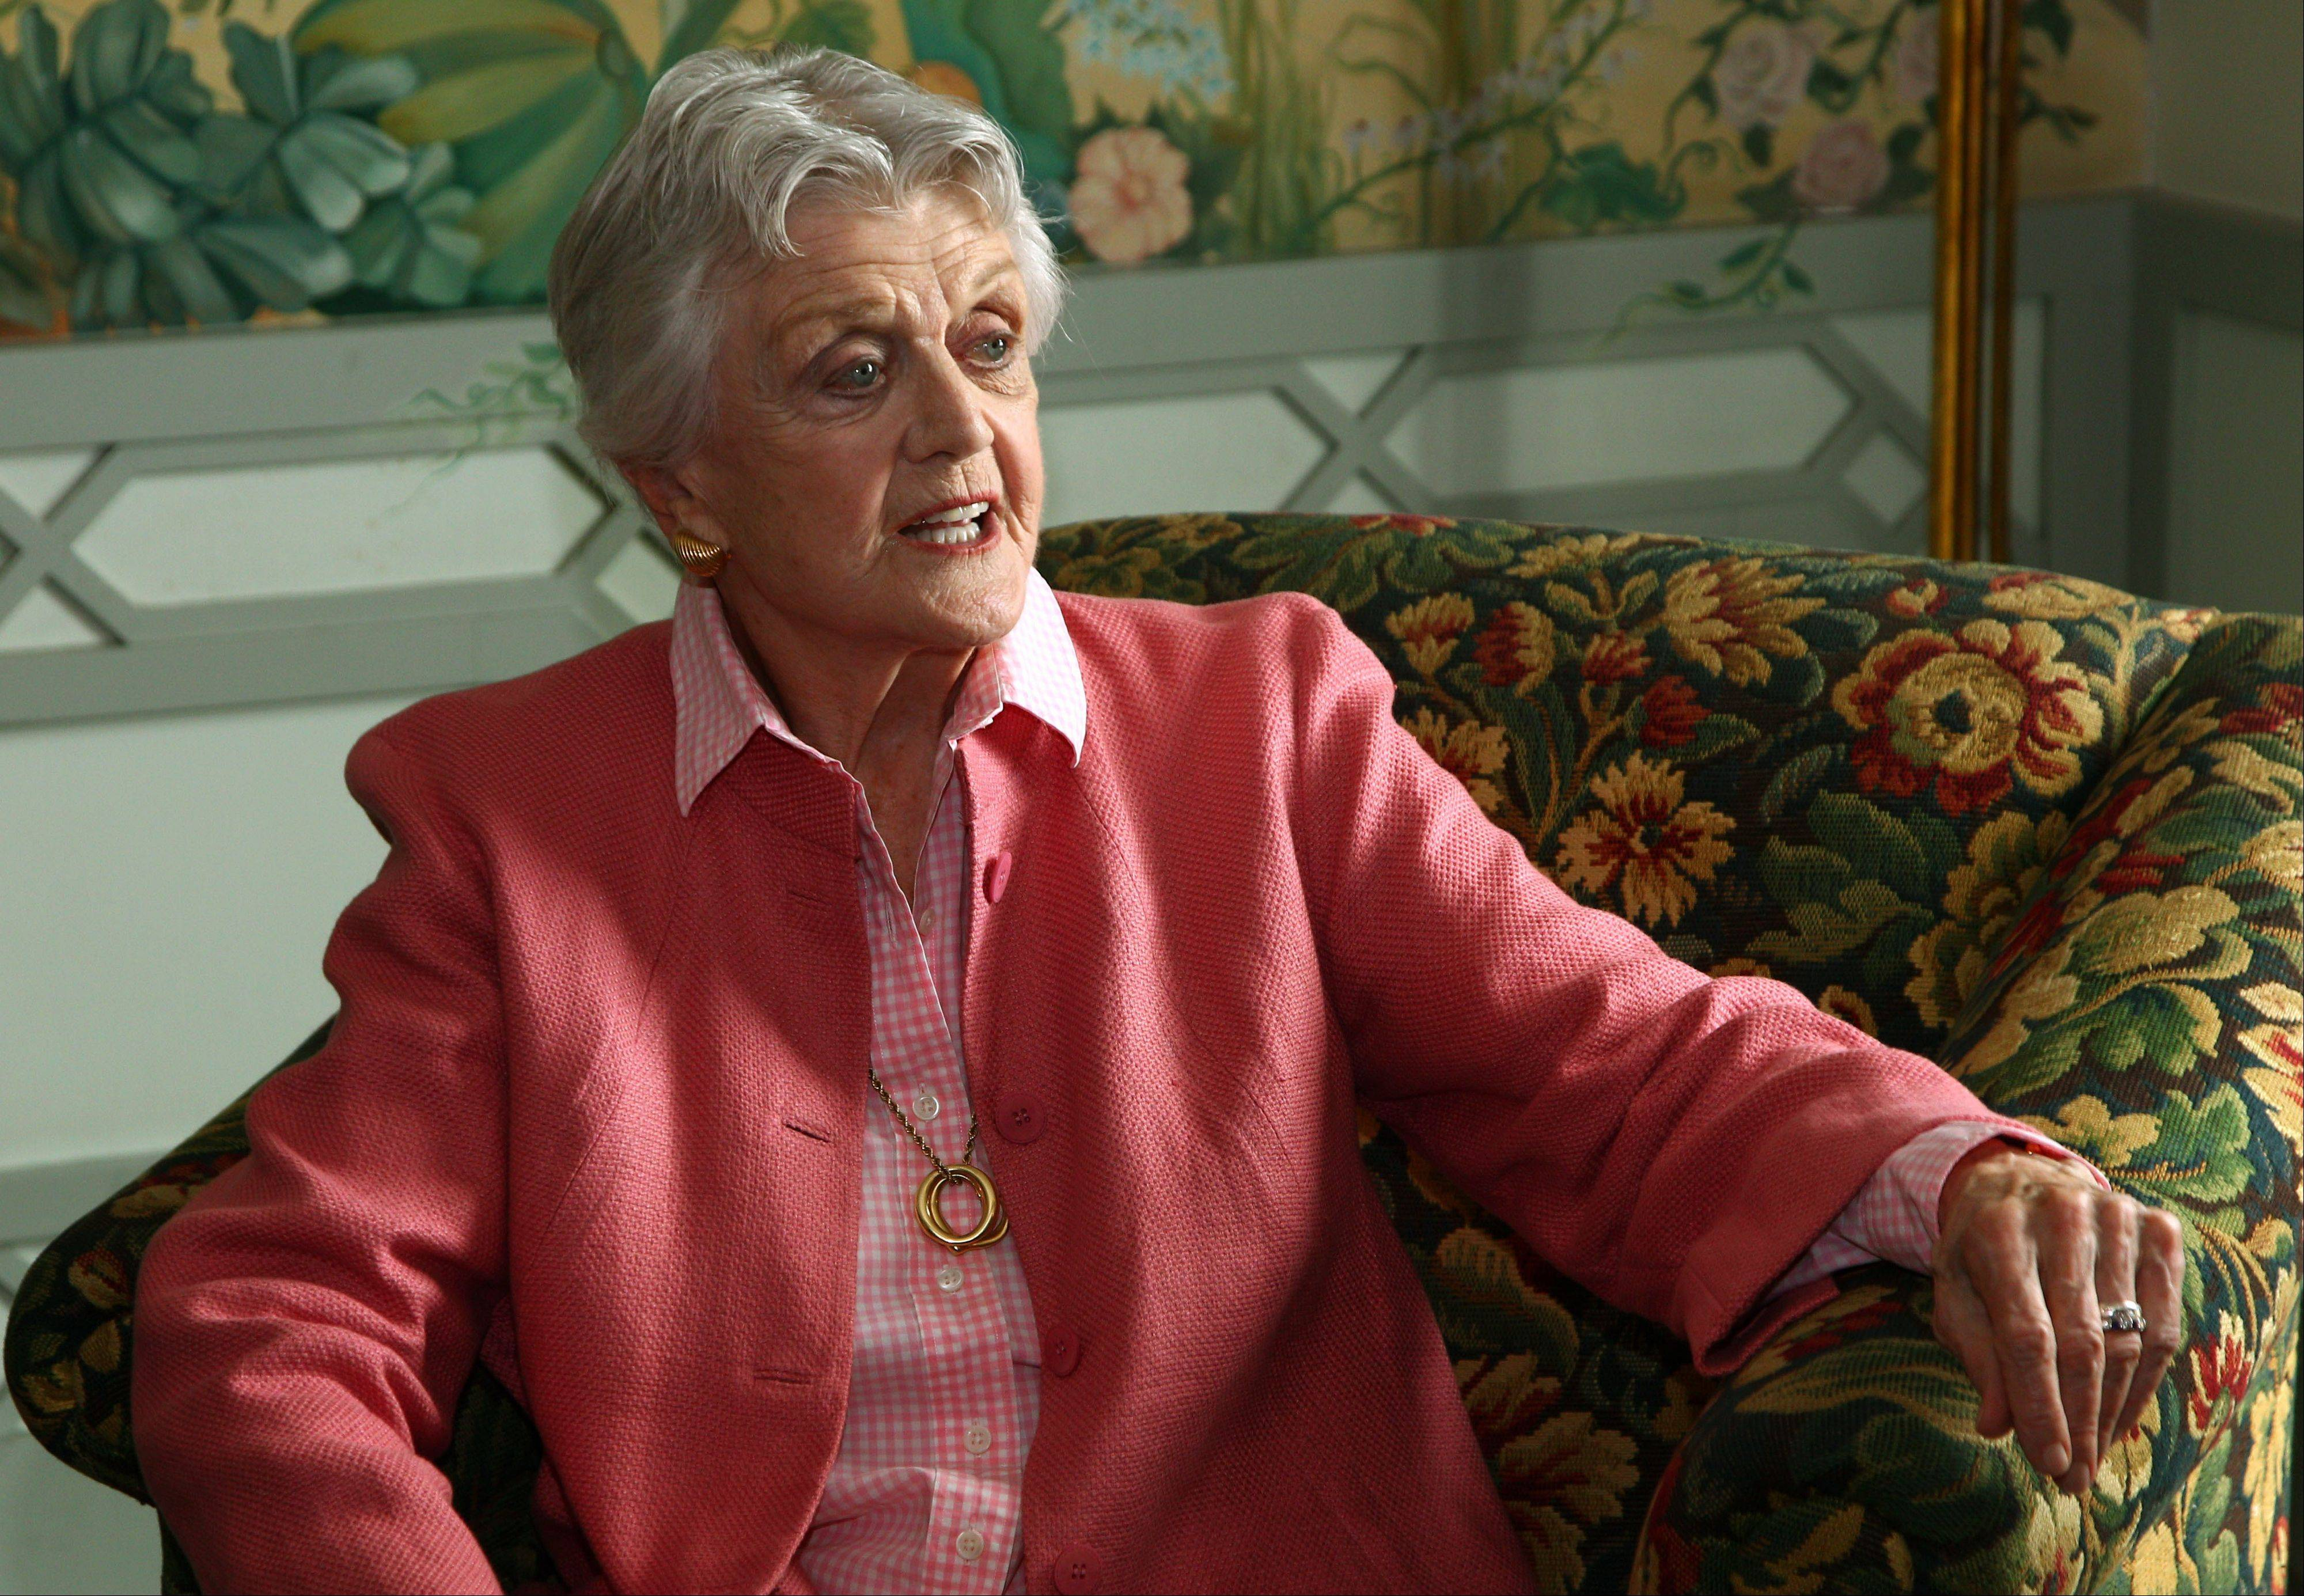 Actress Angela Lansbury, 88, was one of more than 1,000 people who were recognized by Britain's Queen Elizabeth II in the New Year's Honors List.